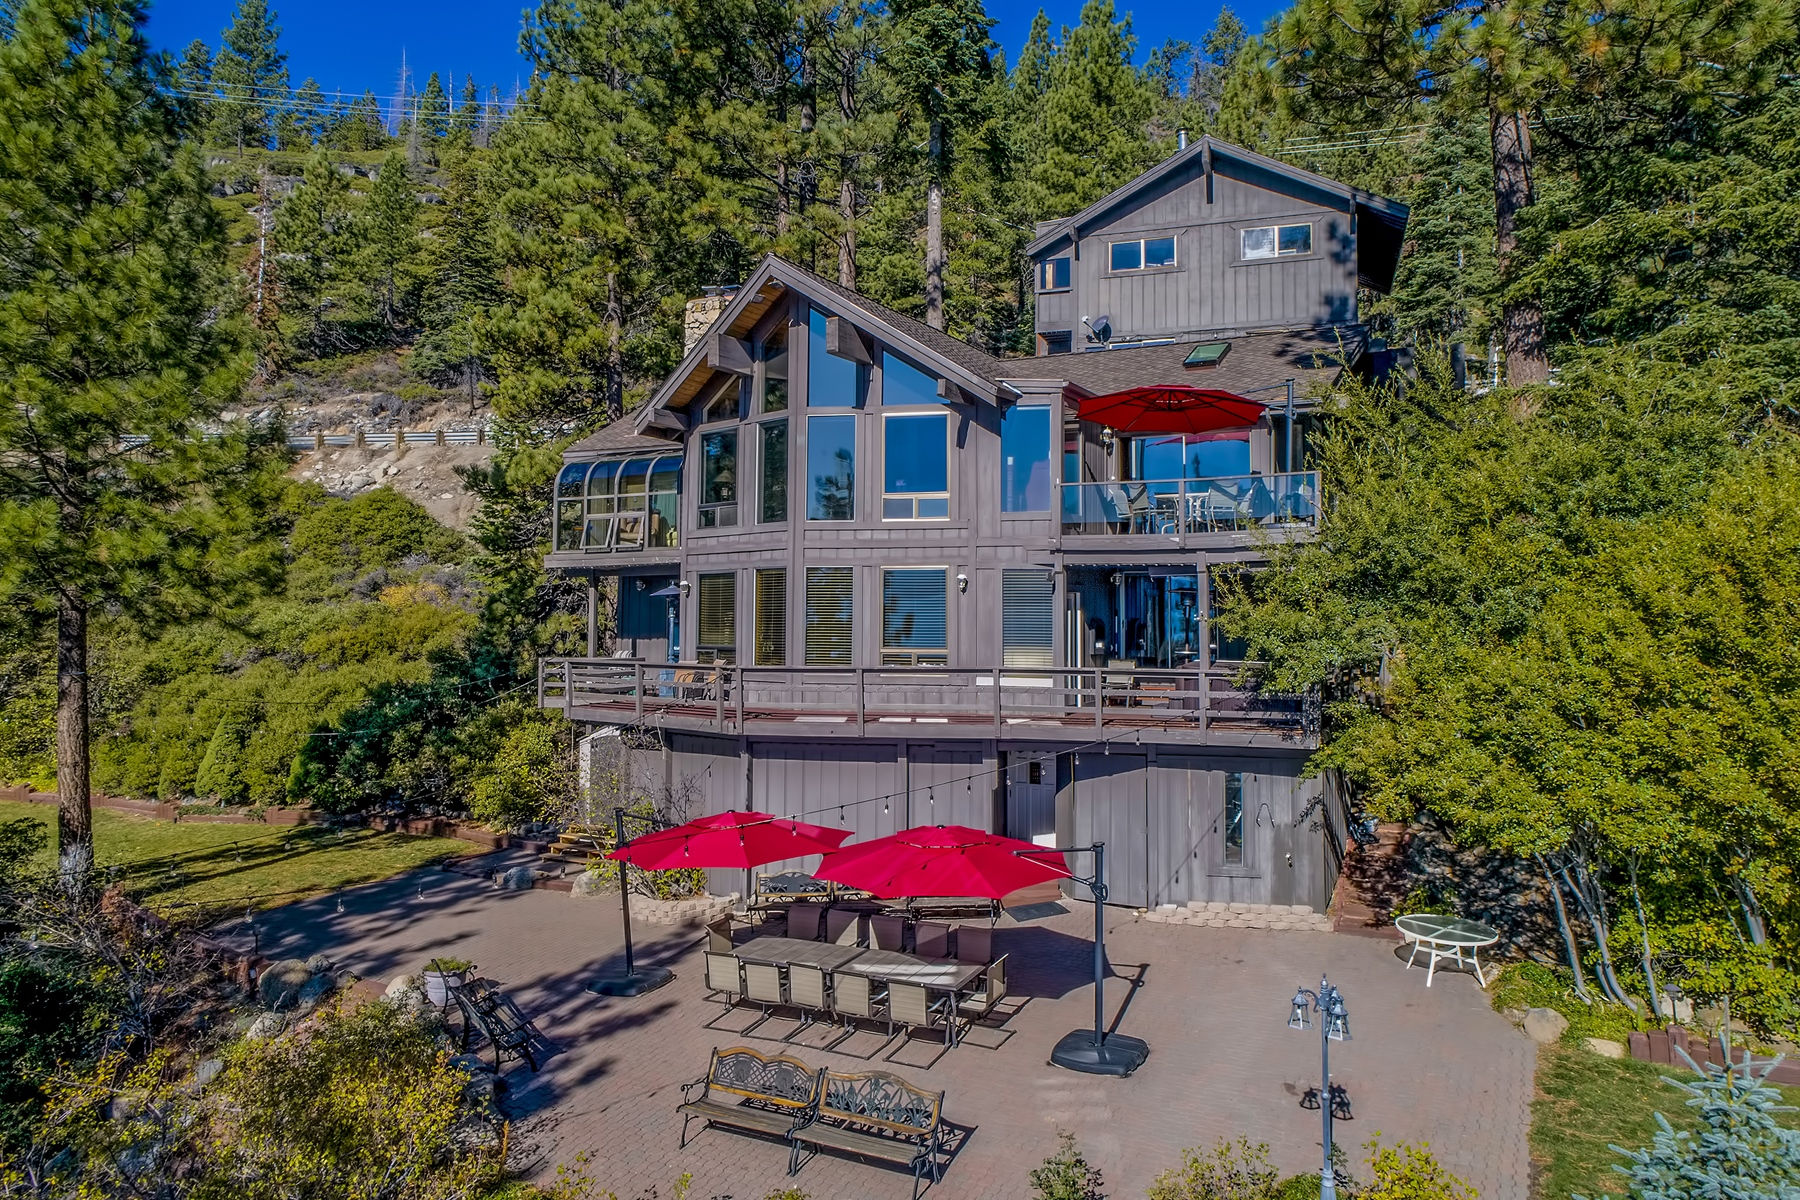 Single Family Home for Active at 453 Lakeshore Blvd., Incline Village, Nevada 453 Lakeshore Boulevard Incline Village, Nevada 89451 United States